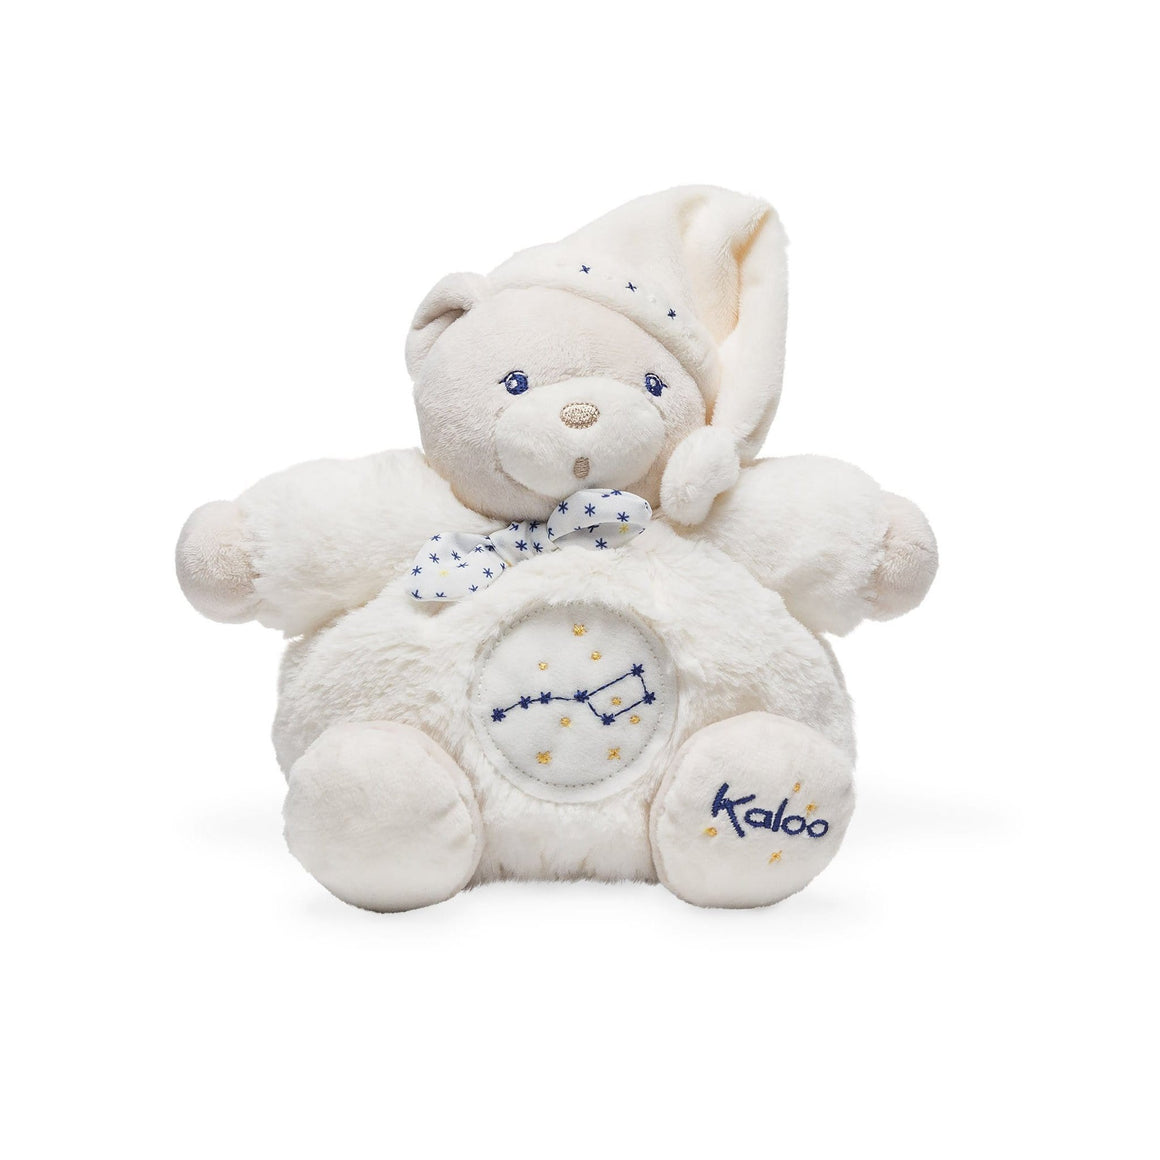 Kaloo France- Chubby Bear Glow Fur Small 18cm 法國品牌Kaloo 小熊(米色睡衣特別版)